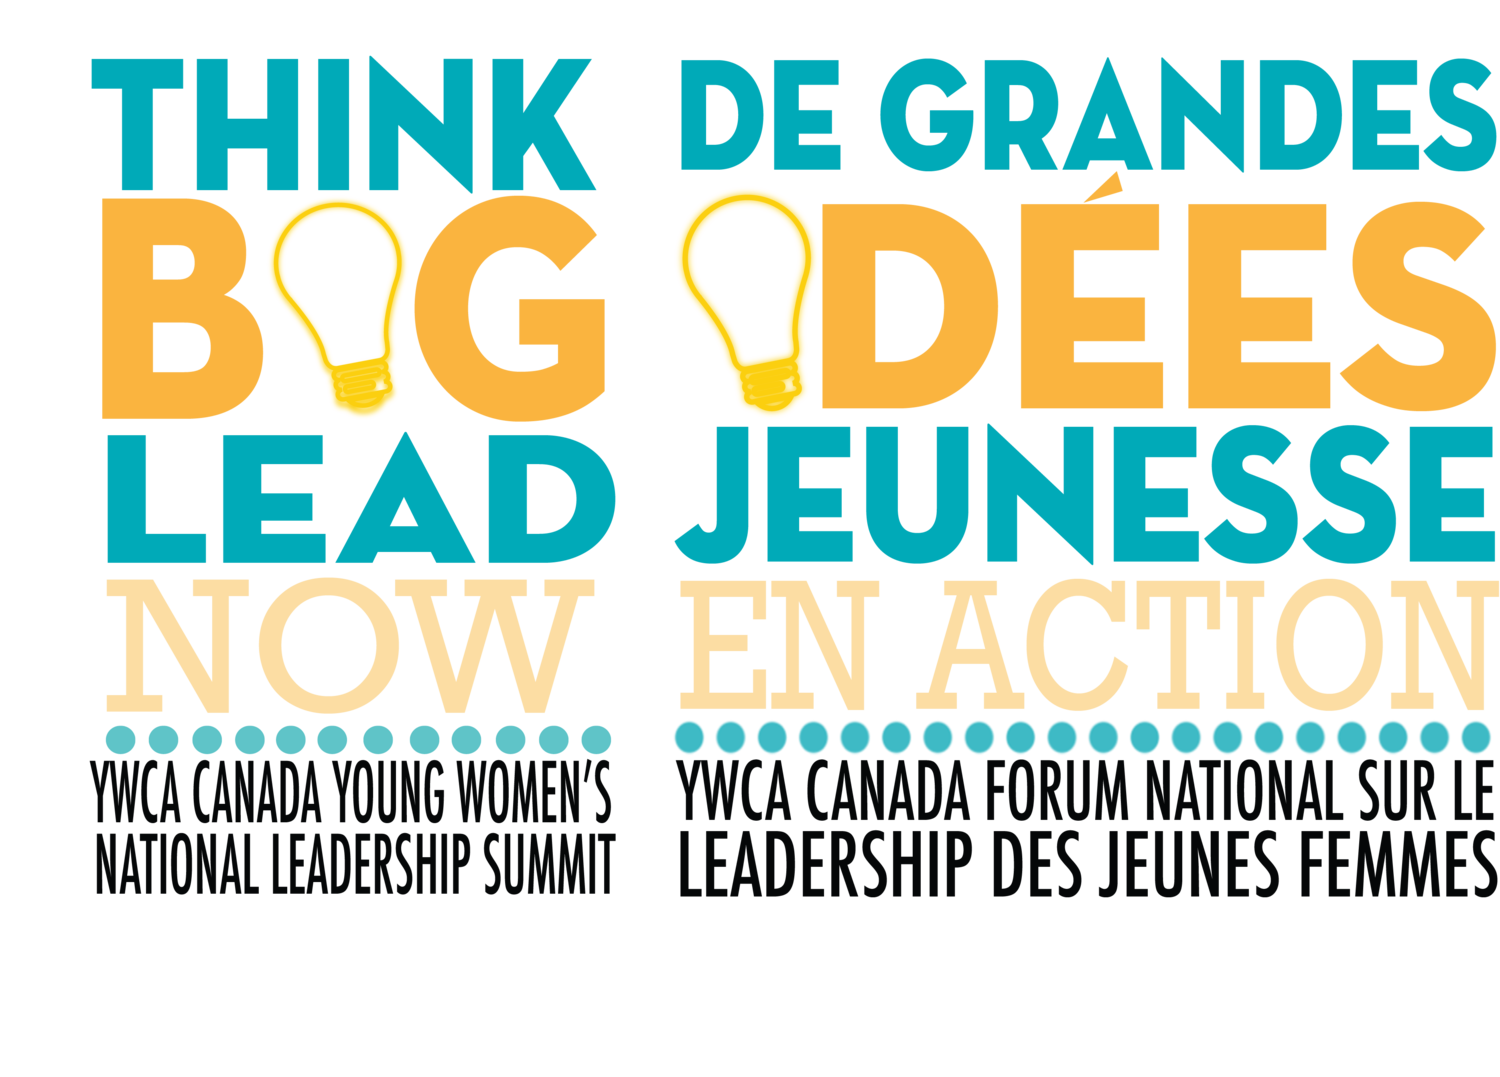 Think Big! Lead Now! De Grandes Idées! Jeunesse en Action!